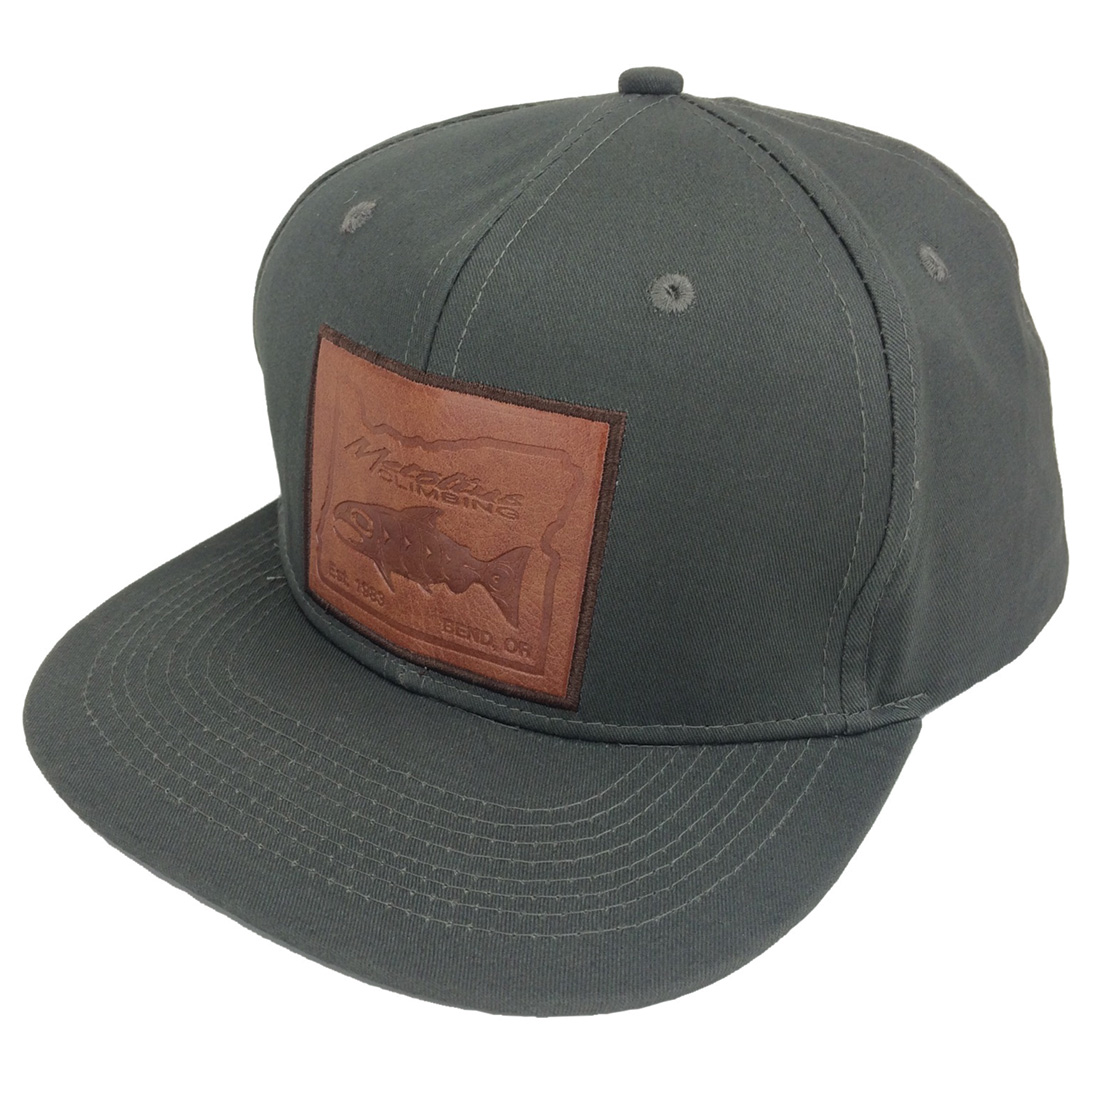 ddc76647d Leather Patch Hat - Metolius Climbing